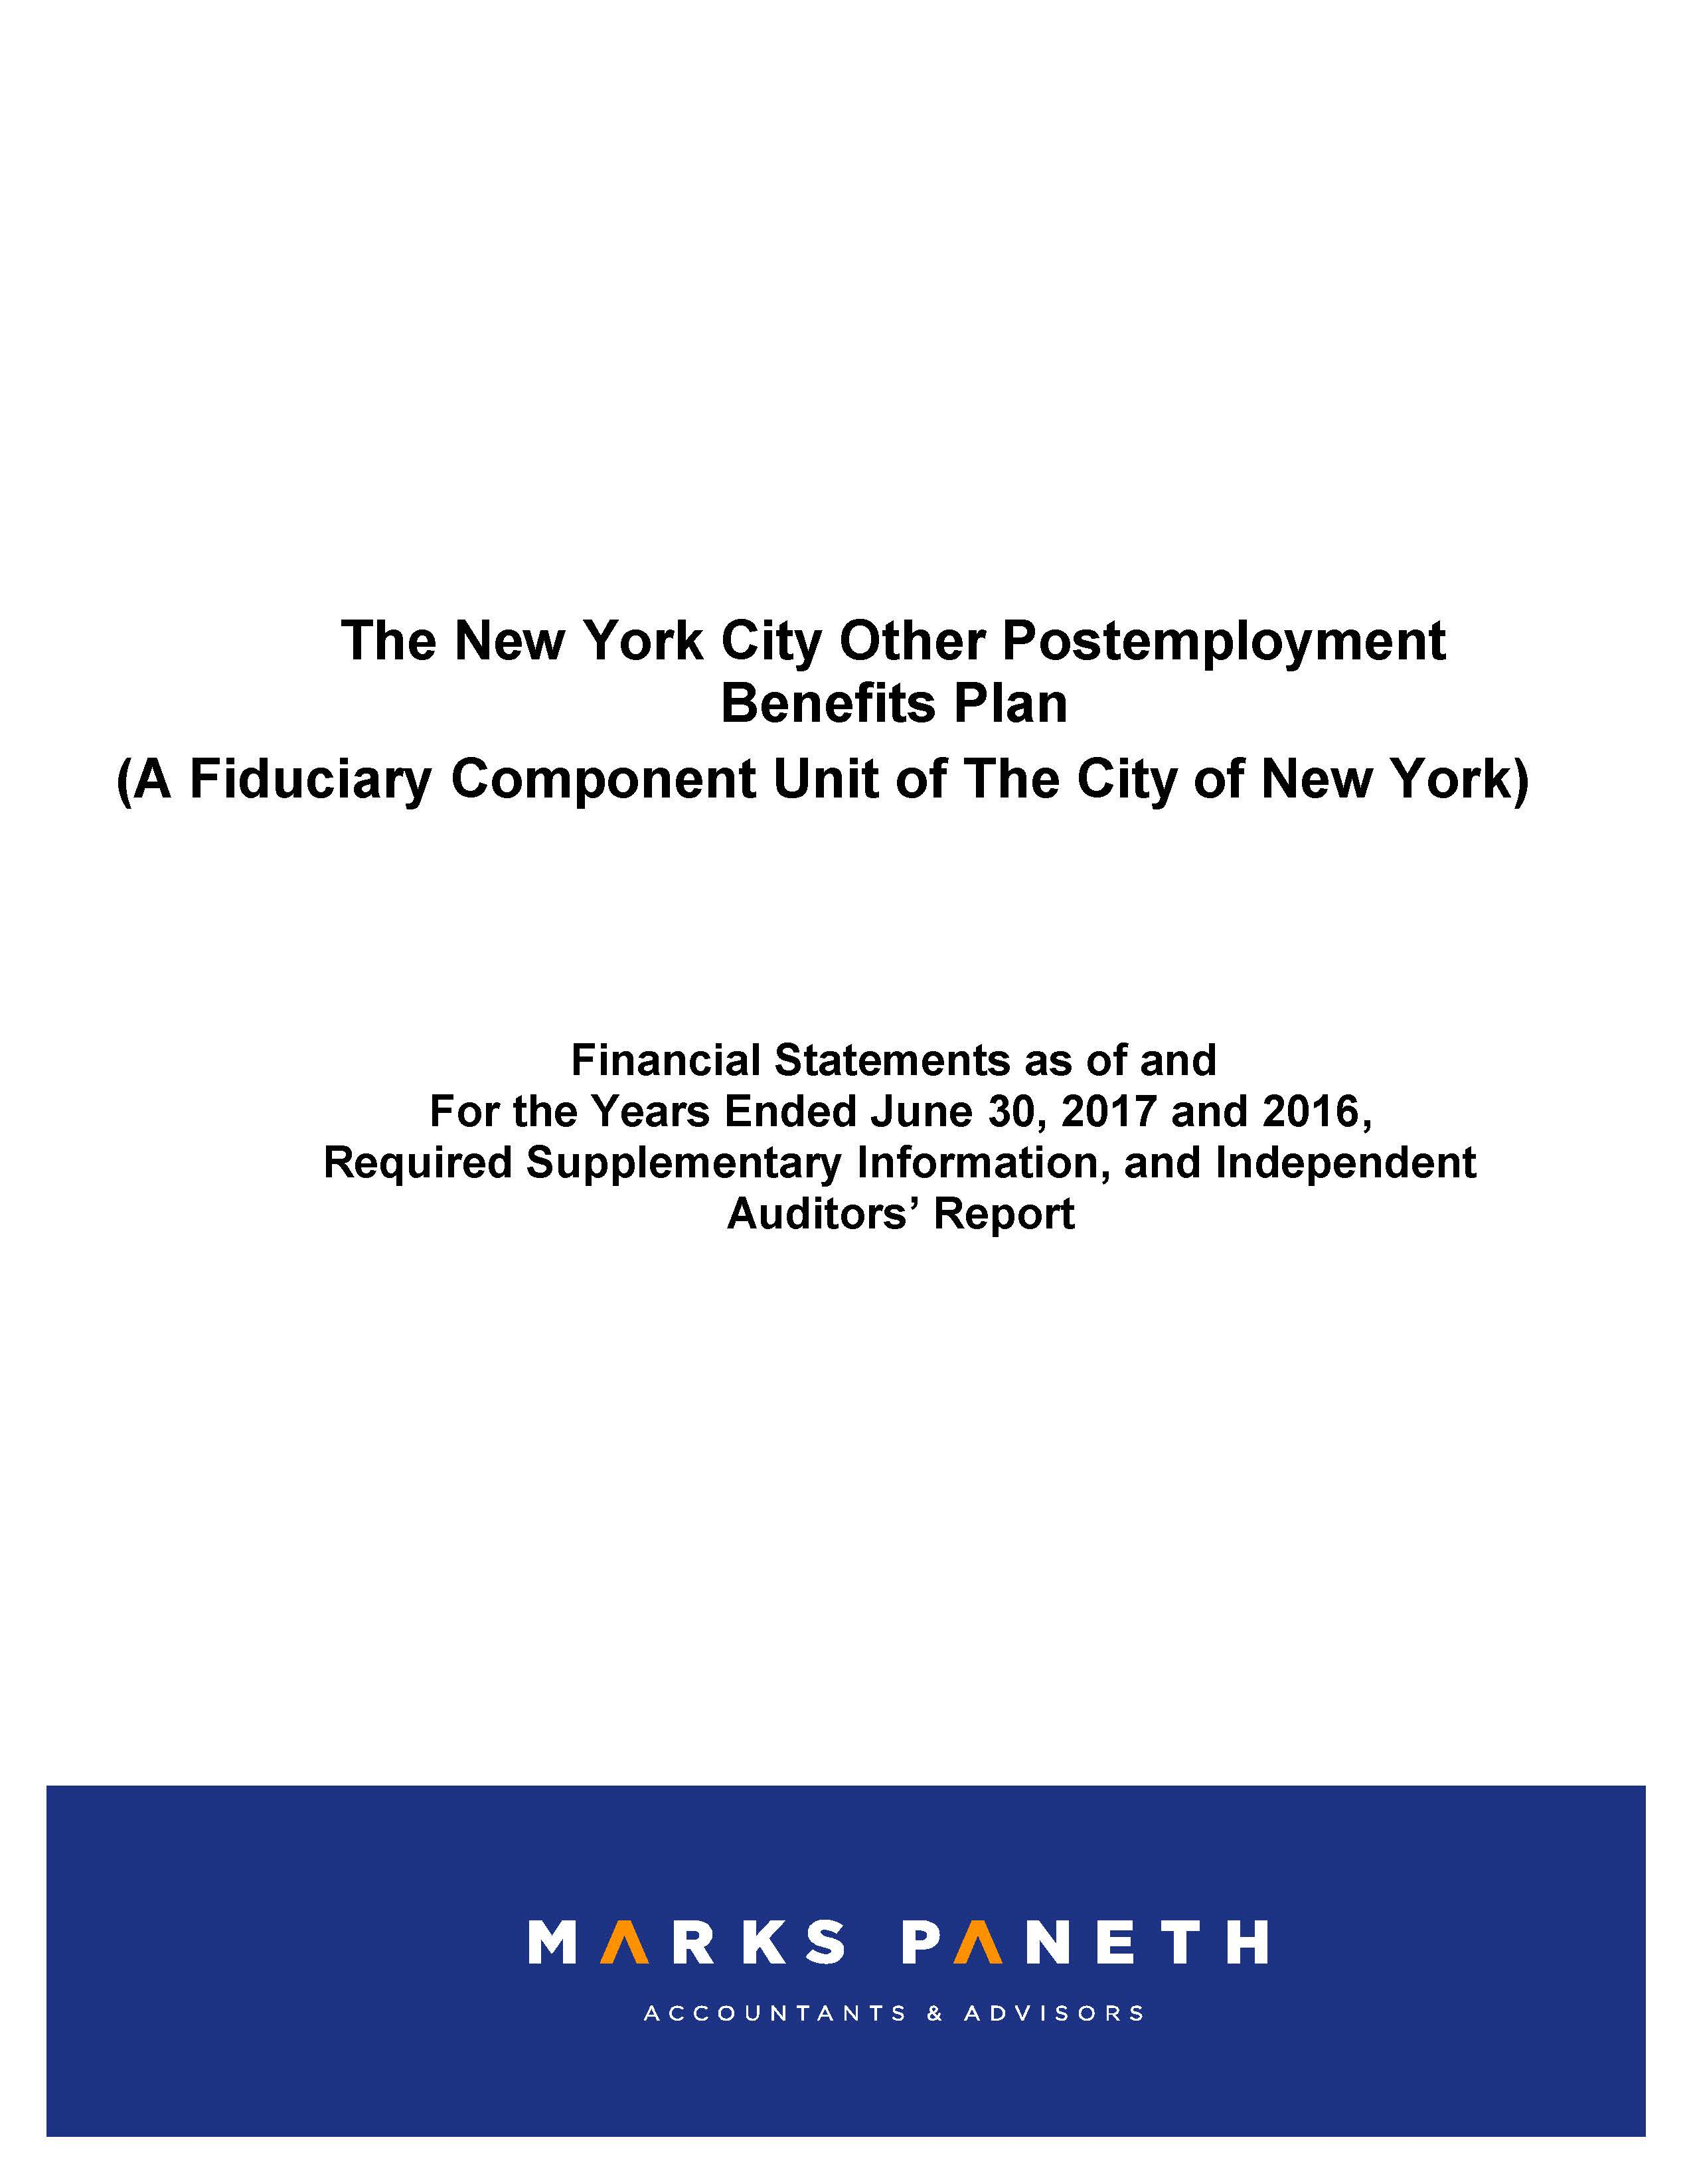 The New York City Other Postemployment Benefits Plan A Fiduciary